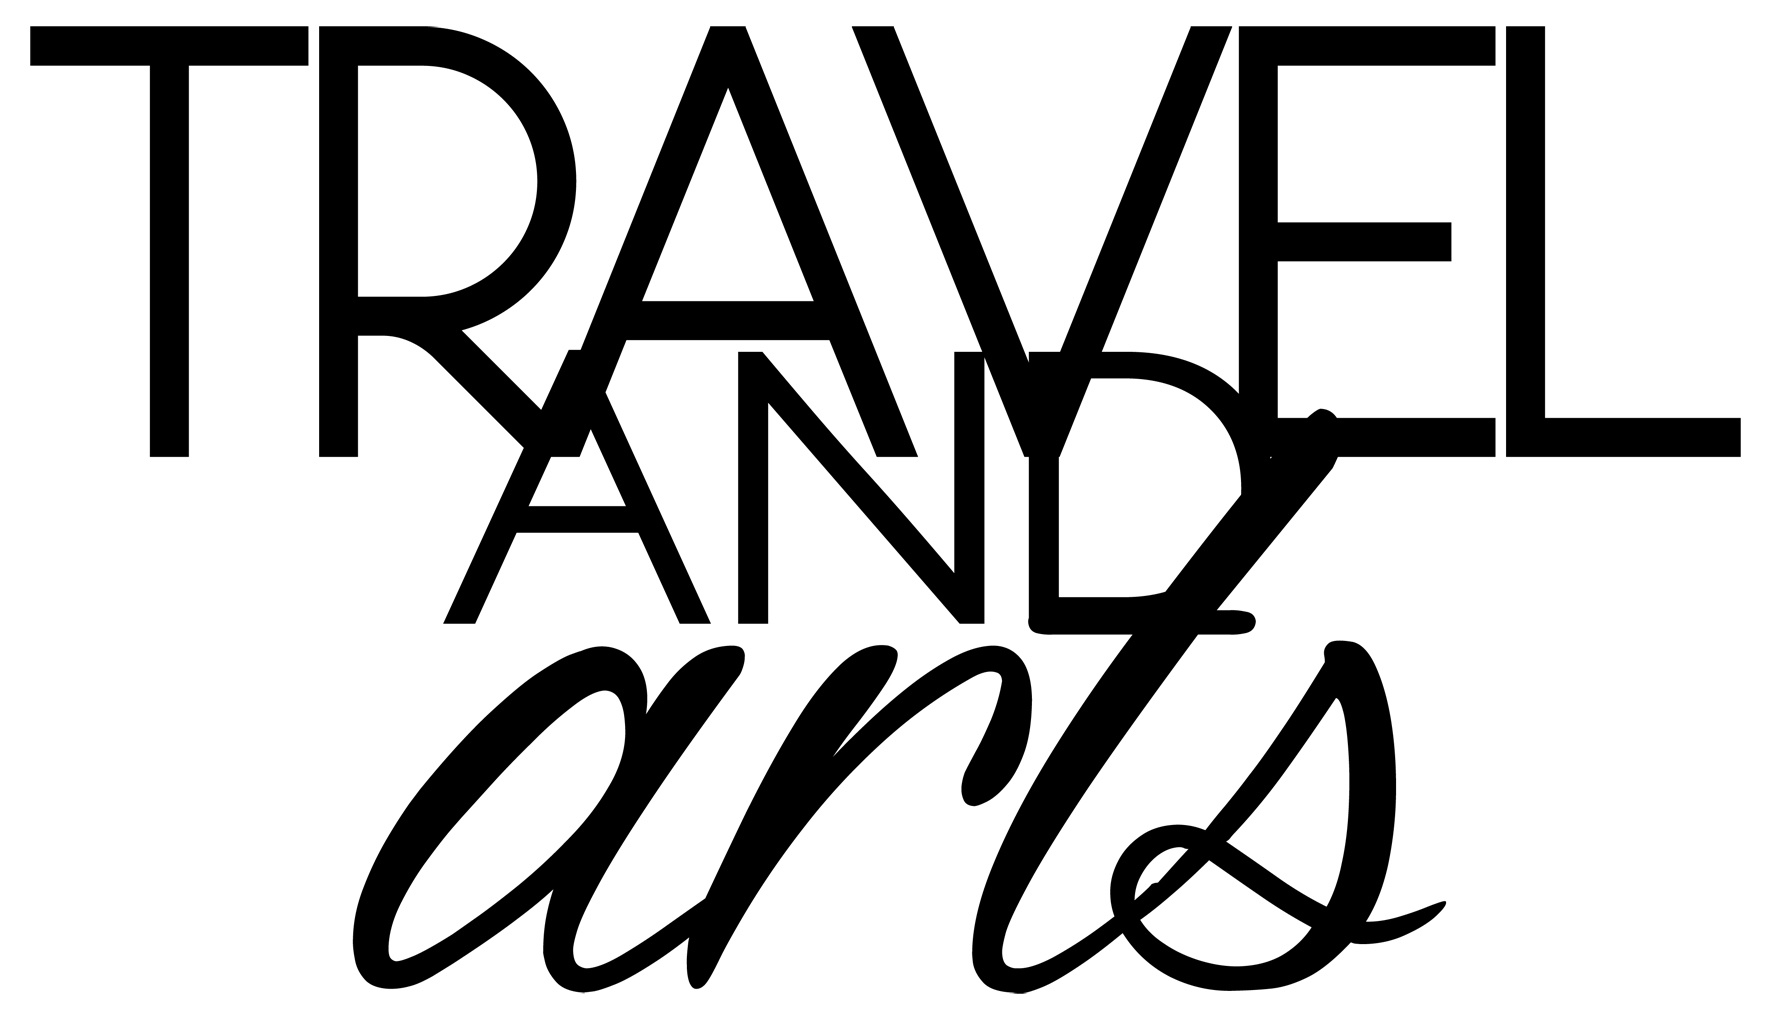 Travel&art logo3